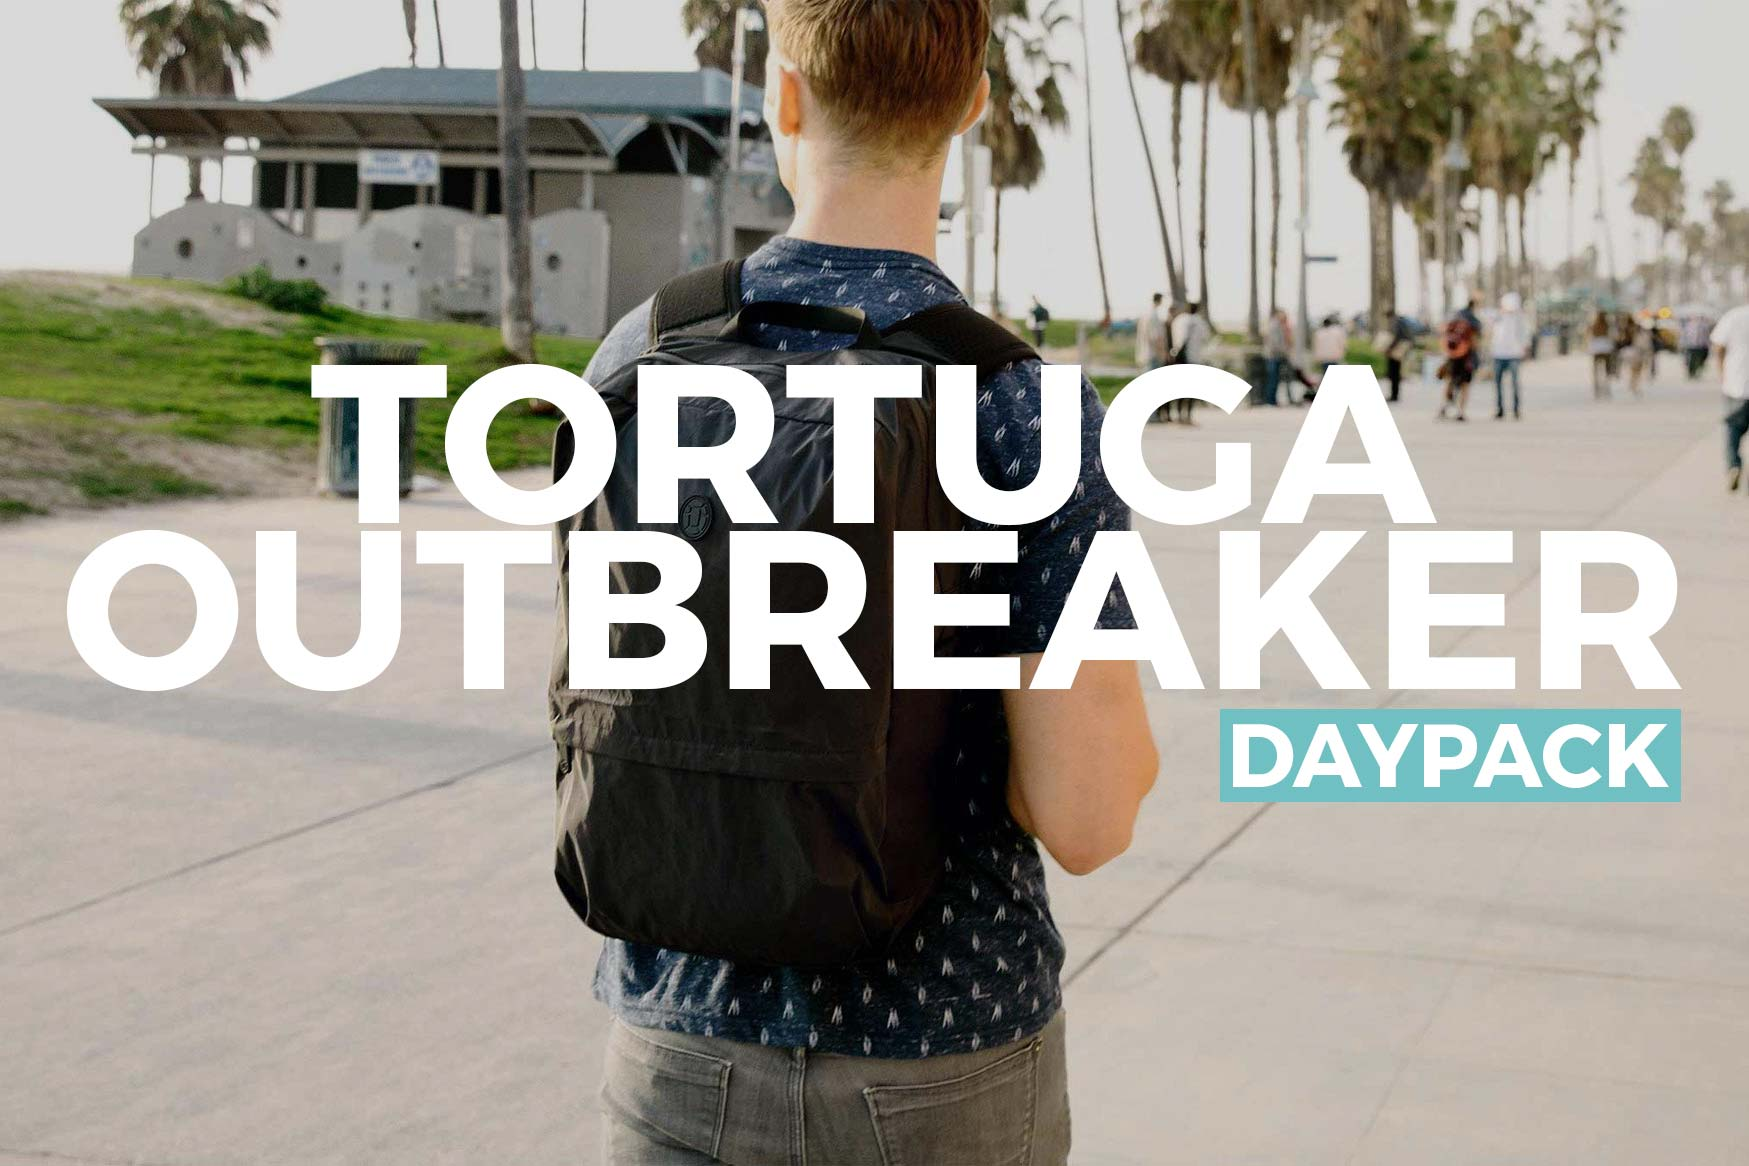 be9072636 REVIEW: Tortuga Outbreaker Daypack - The Best Daypack for Travel ...